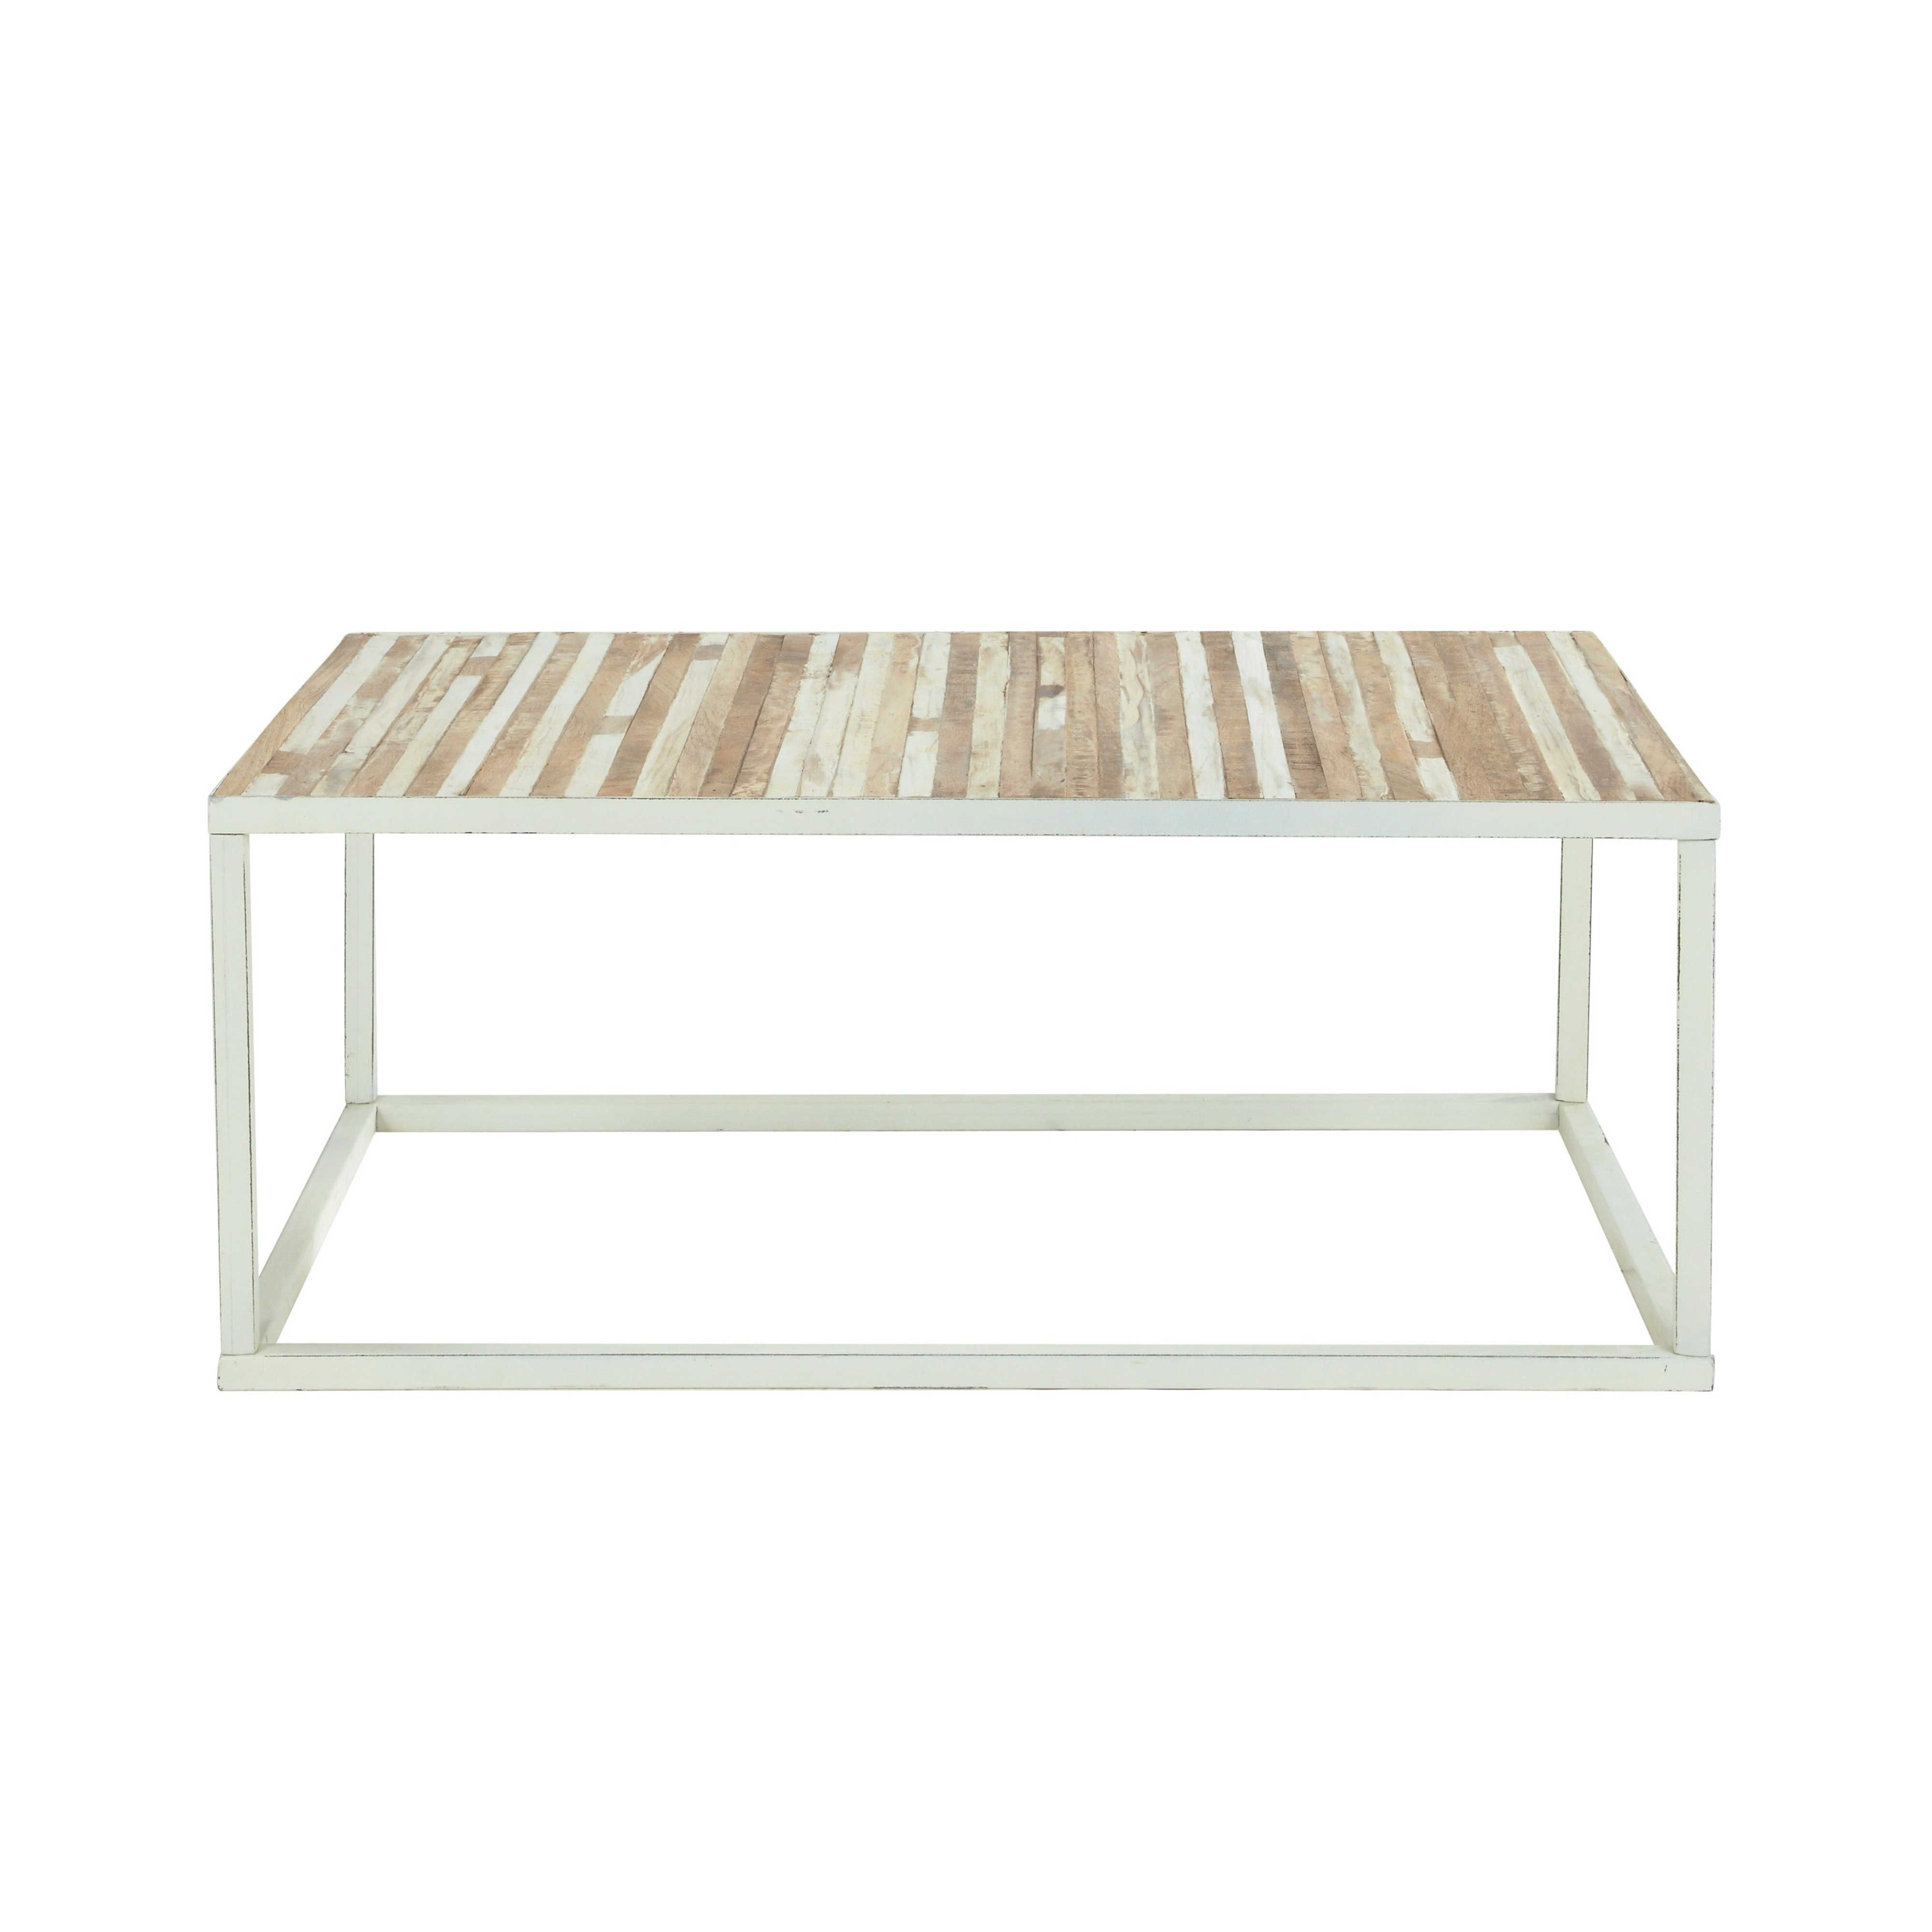 Table Blanche Et Bois Table Basse En Métal Blanc Saint Maur Table Beach House